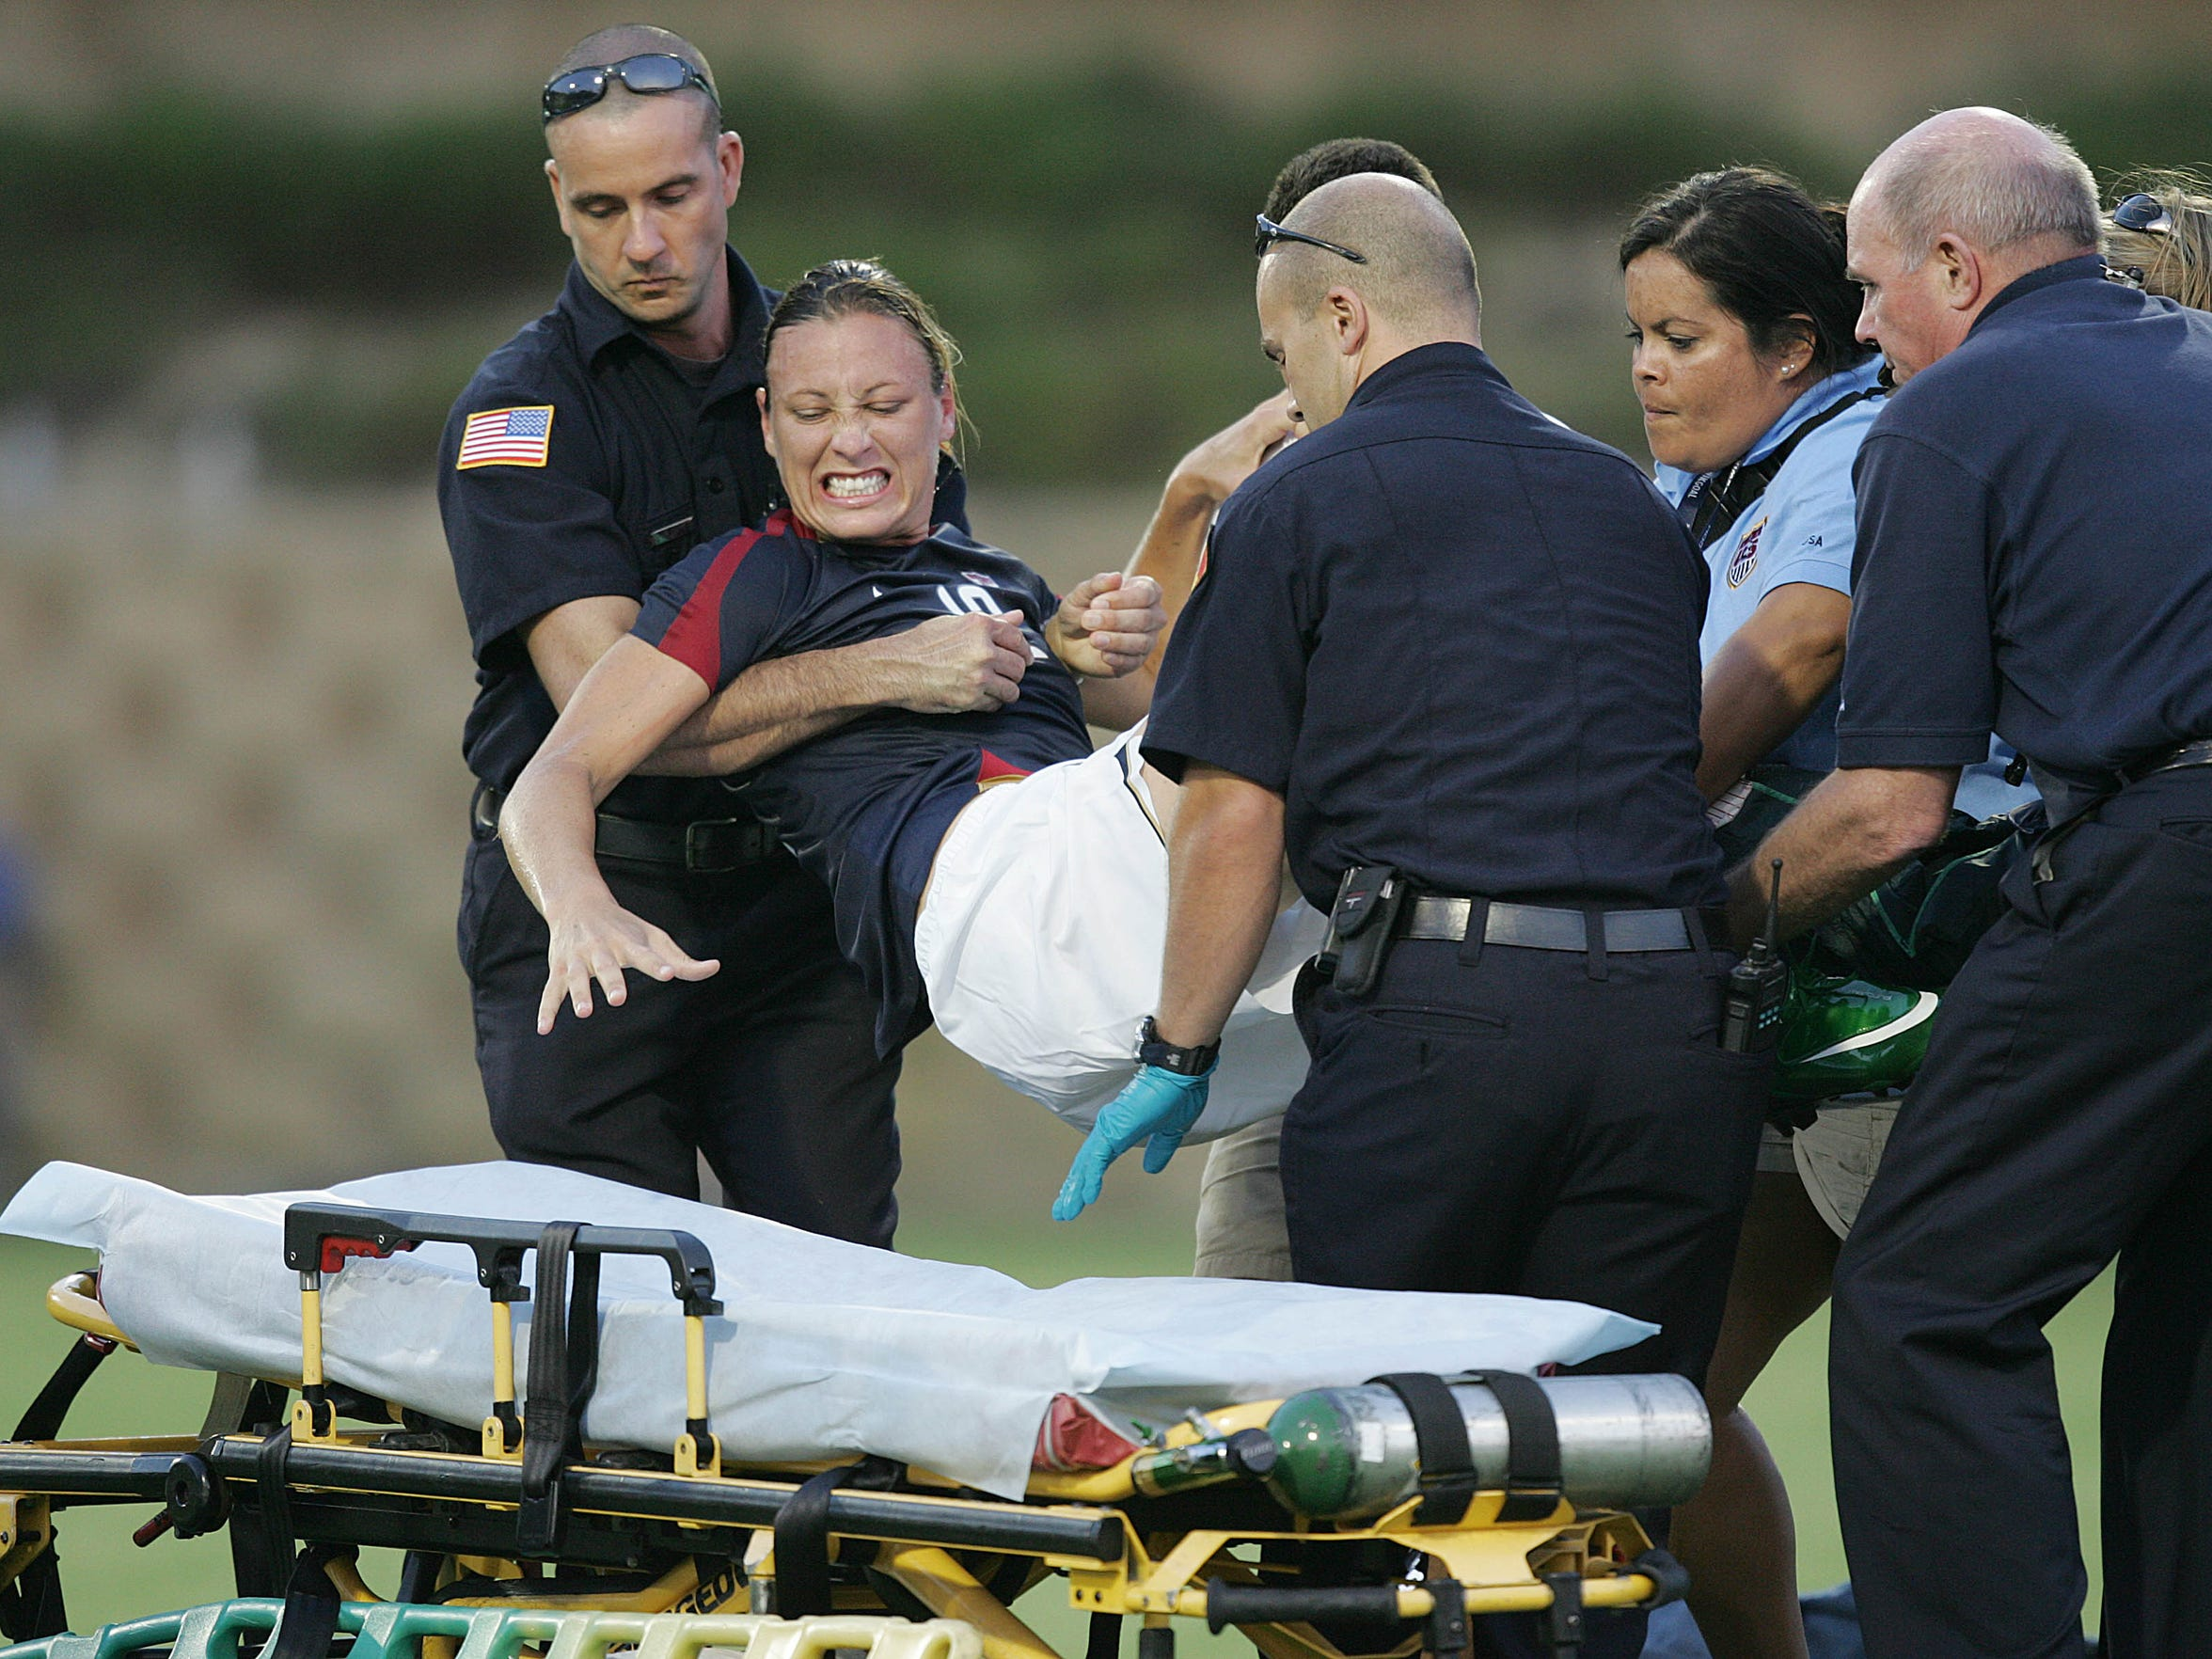 Abby Wambach is hit hard by a Brazilian player and taken off the field by a stretcher during a game July 16, 2008 in San Diego.